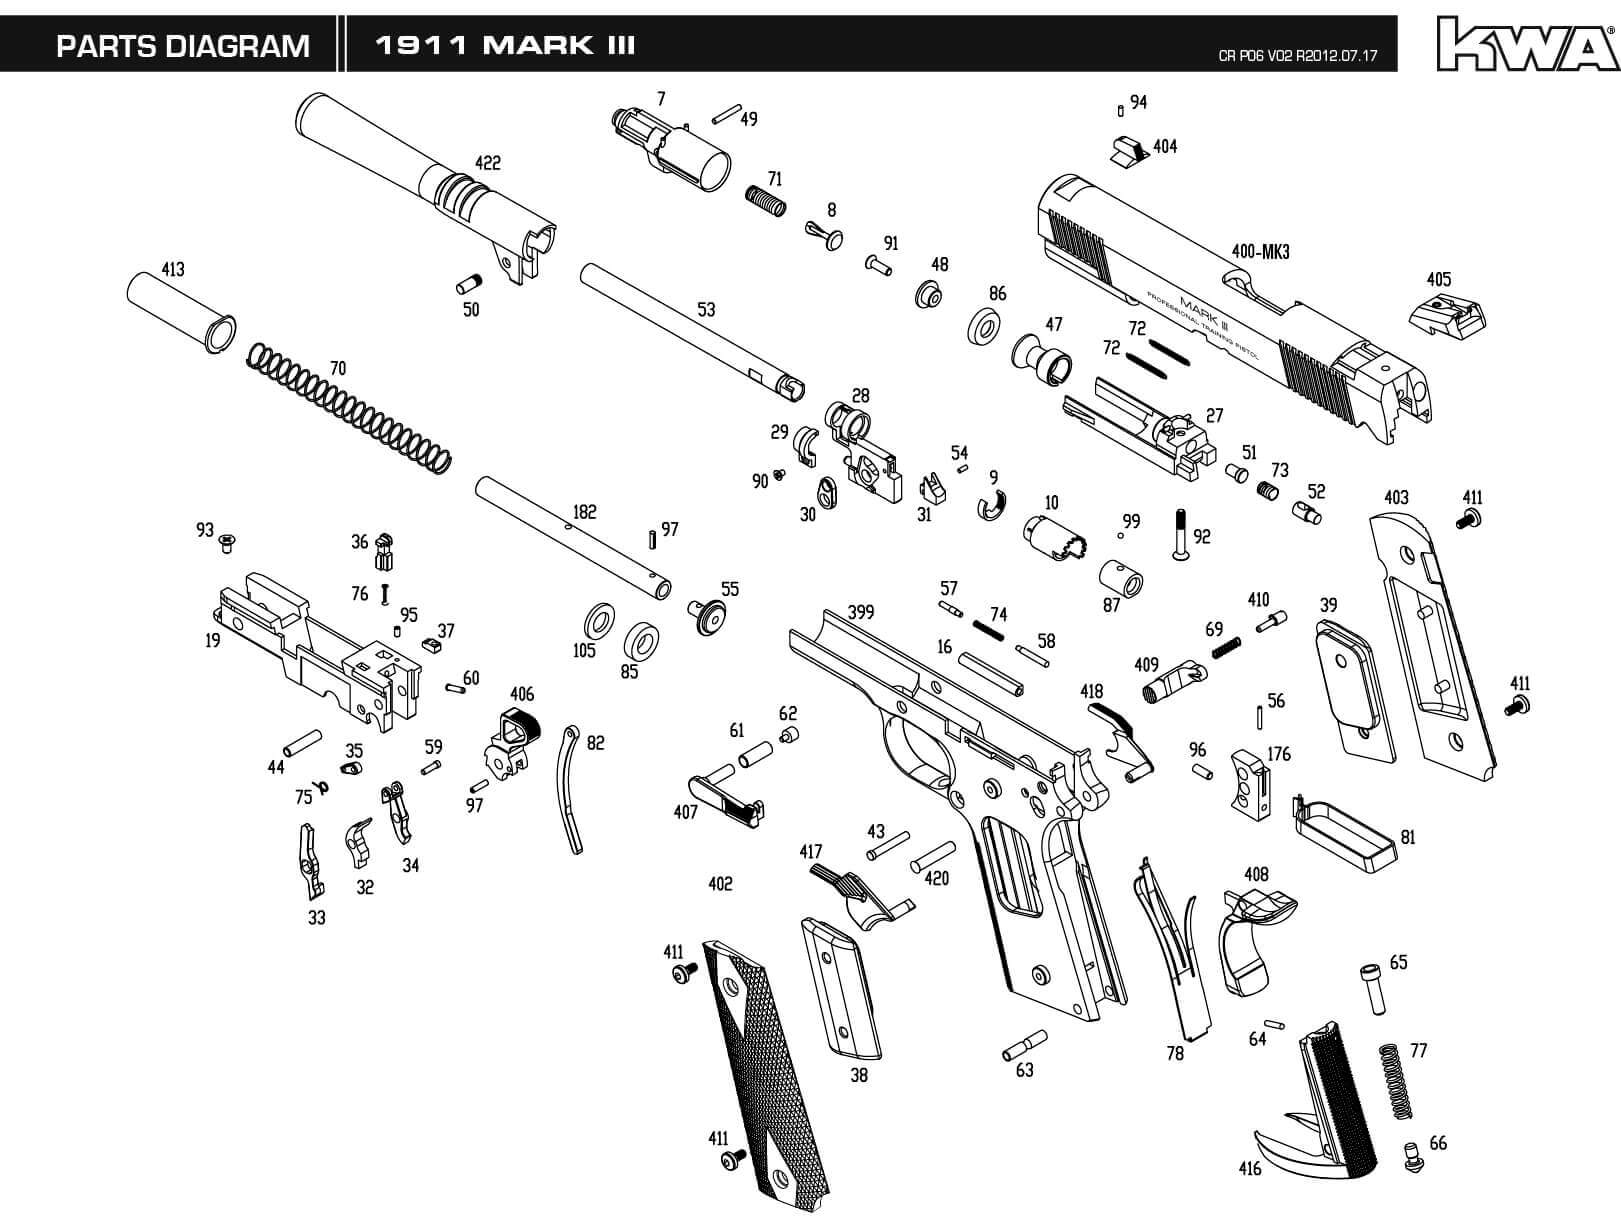 Downloads Kwa Airsoft 22 Rifle Parts Diagram Engine Car And Component M1911 Mk Iii